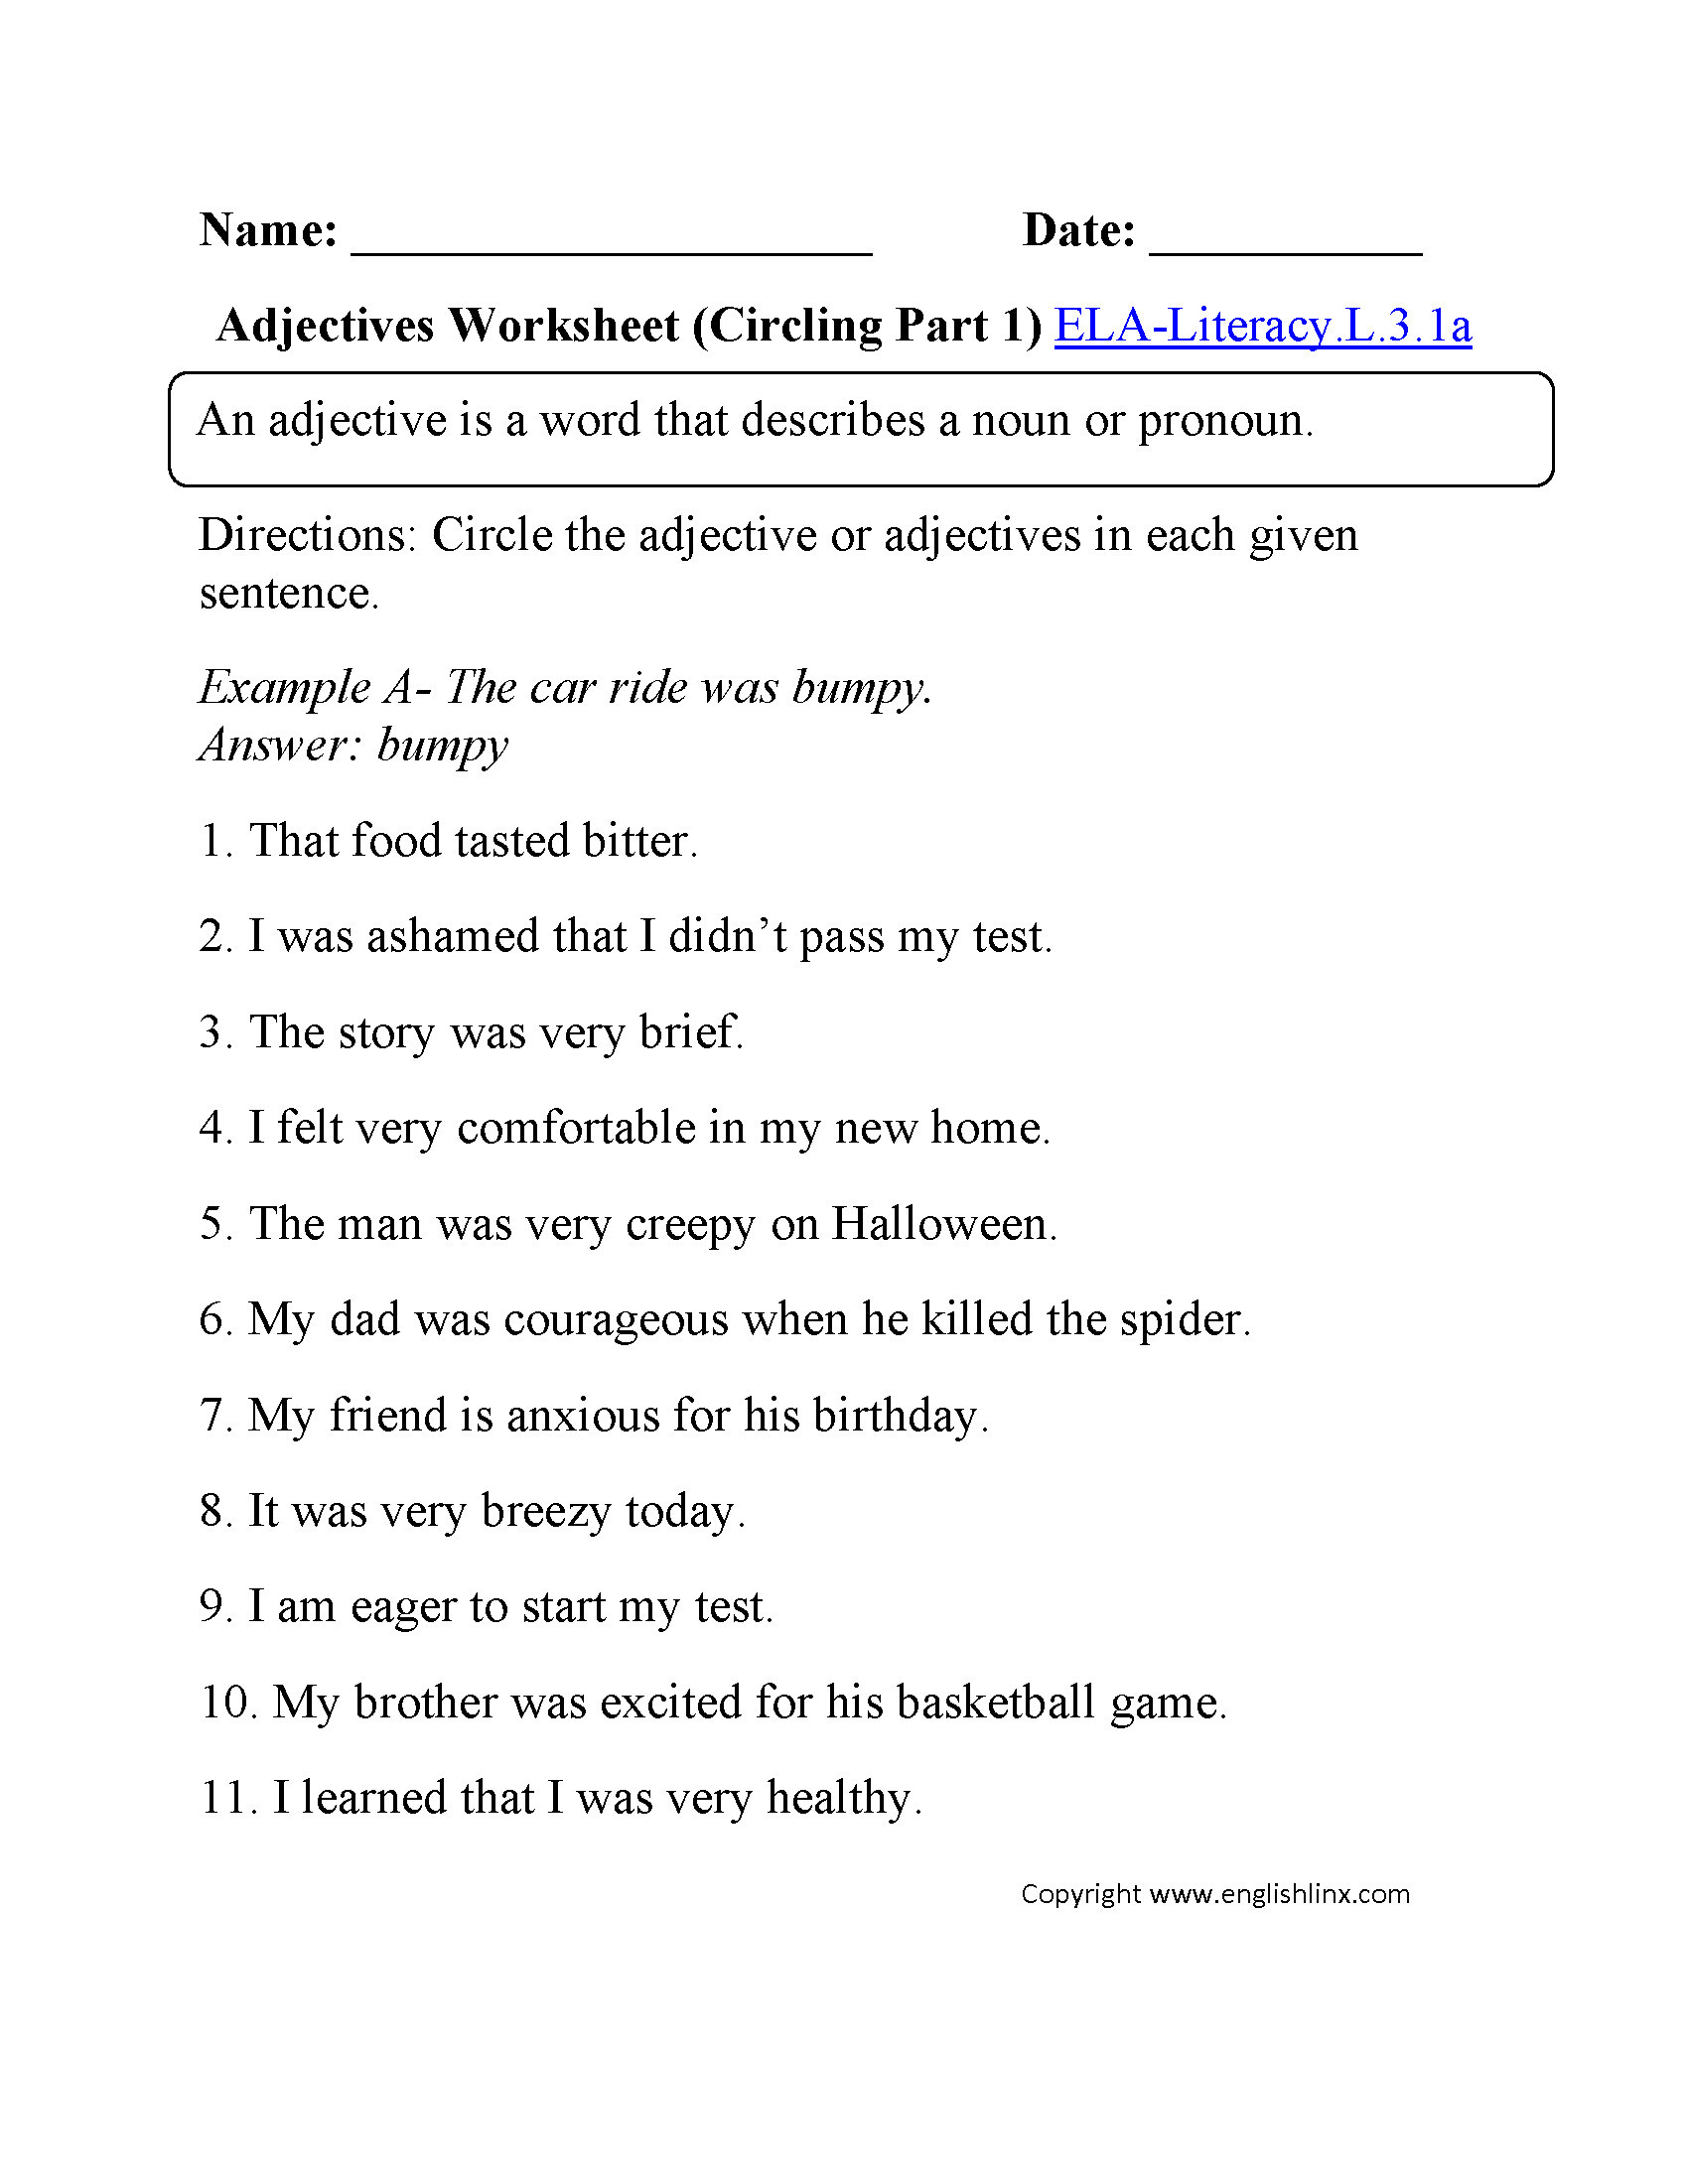 Third Grade Grammar Worksheets 3 Free Grammar Worksheets Third Grade 3 Adjectives Pare